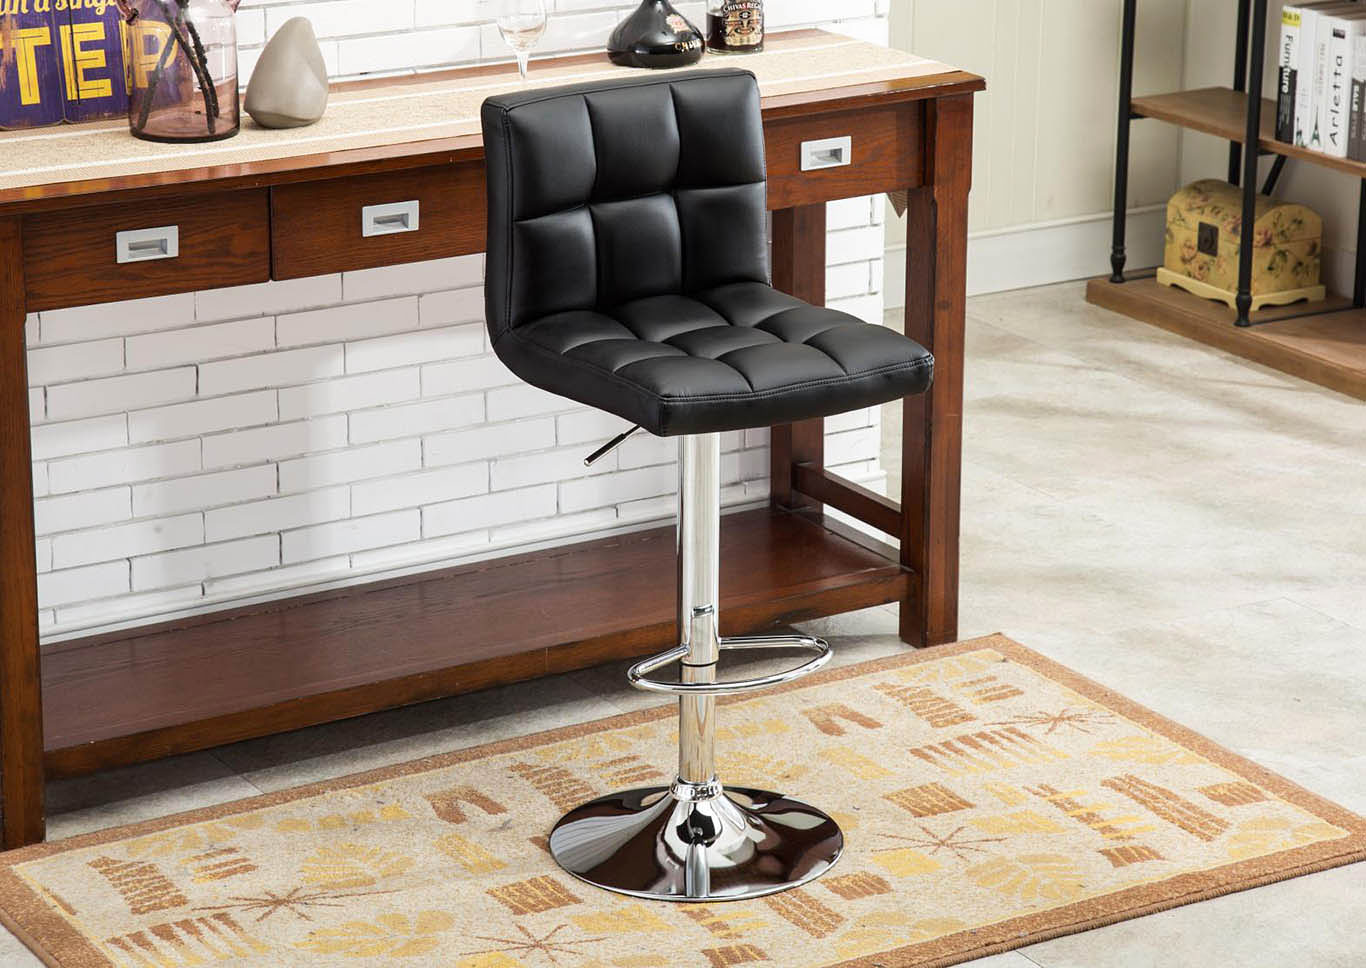 Black Bar Stool (2 In 1 Box),Global Trading